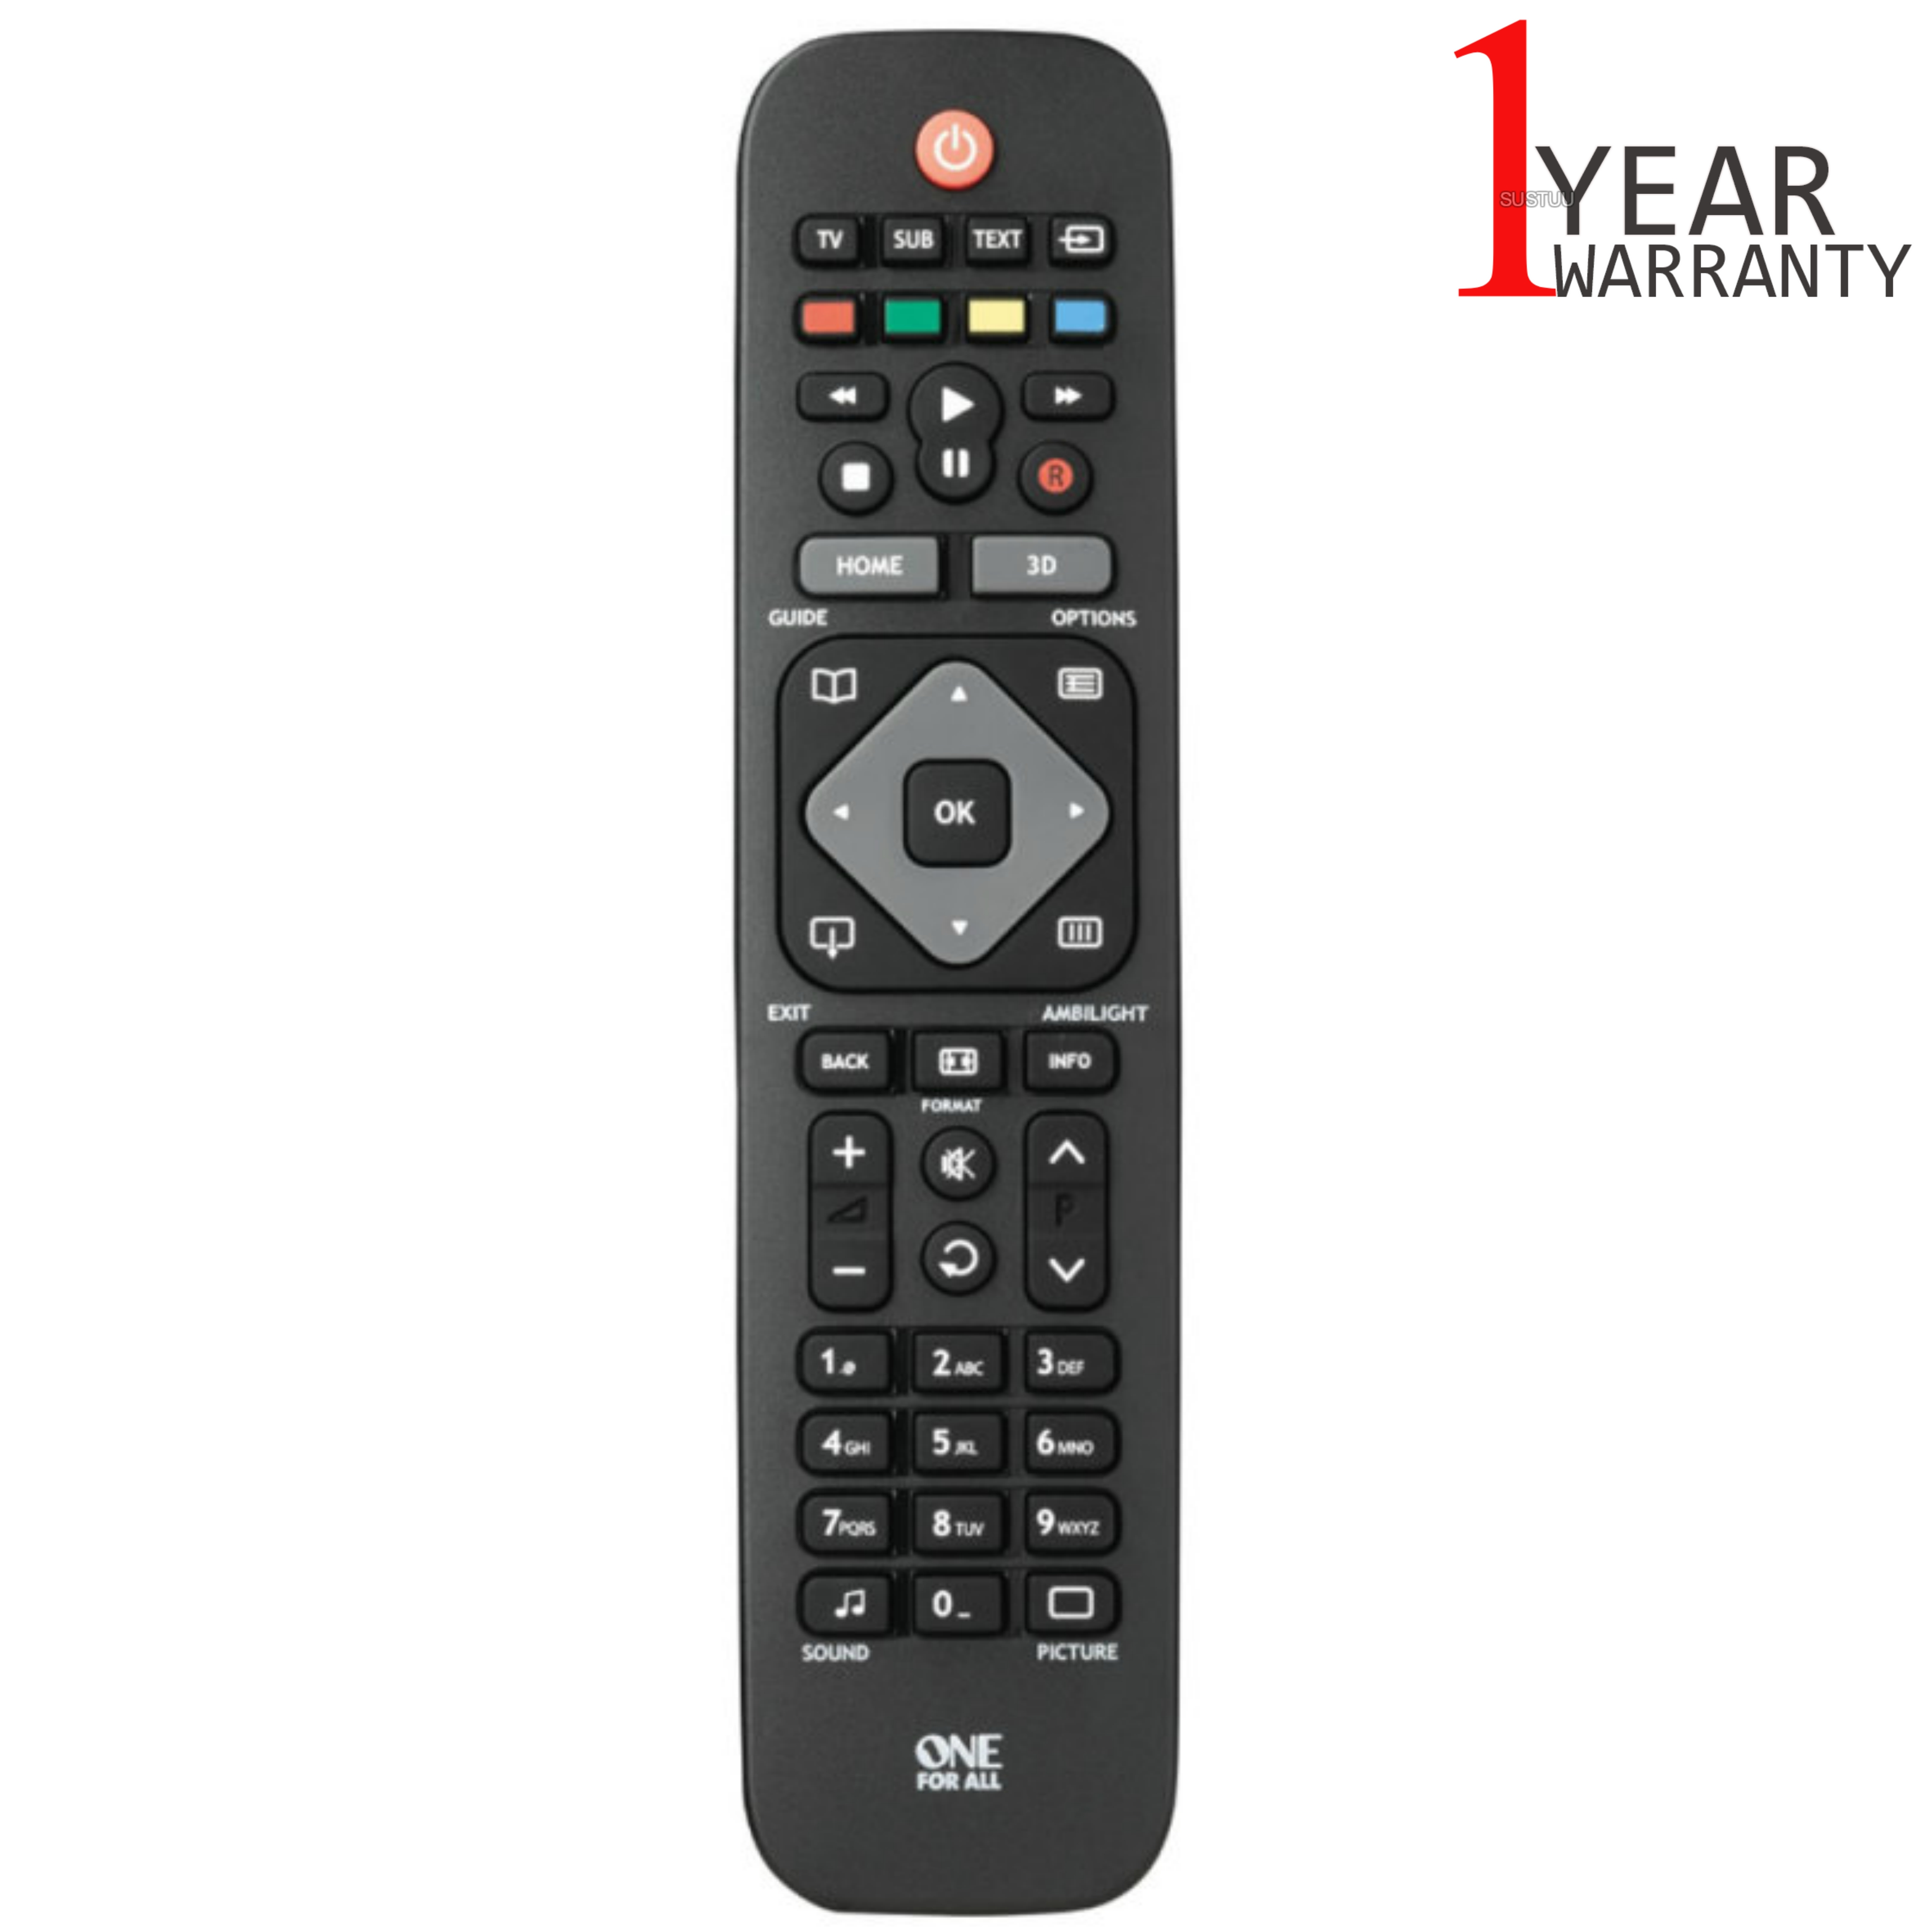 One For All Replacement Philips TV Remote Control | No Setup Required | Black | URC1913